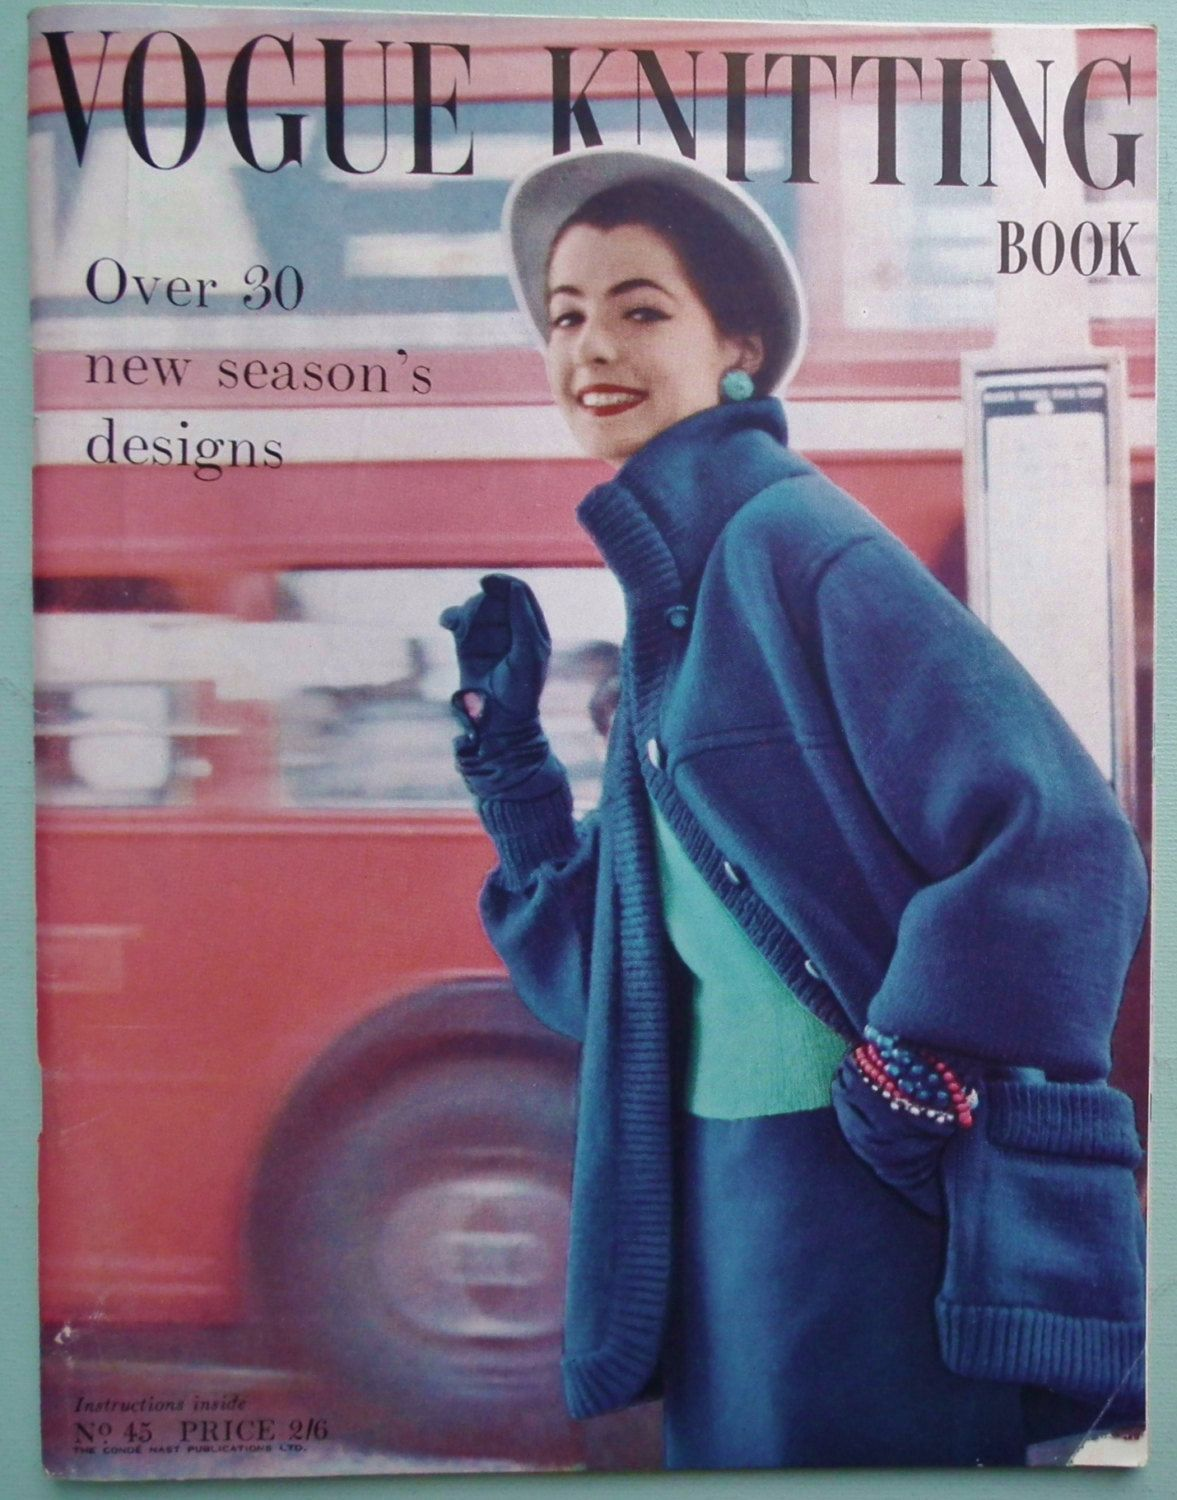 Vogue knitting book no 45 1950s 0 blueazulazzurro vogue knitting book no 45 vintage knitting patterns womens jackets sweaters jumpers suits bedjackets lace stole original patterns bankloansurffo Choice Image